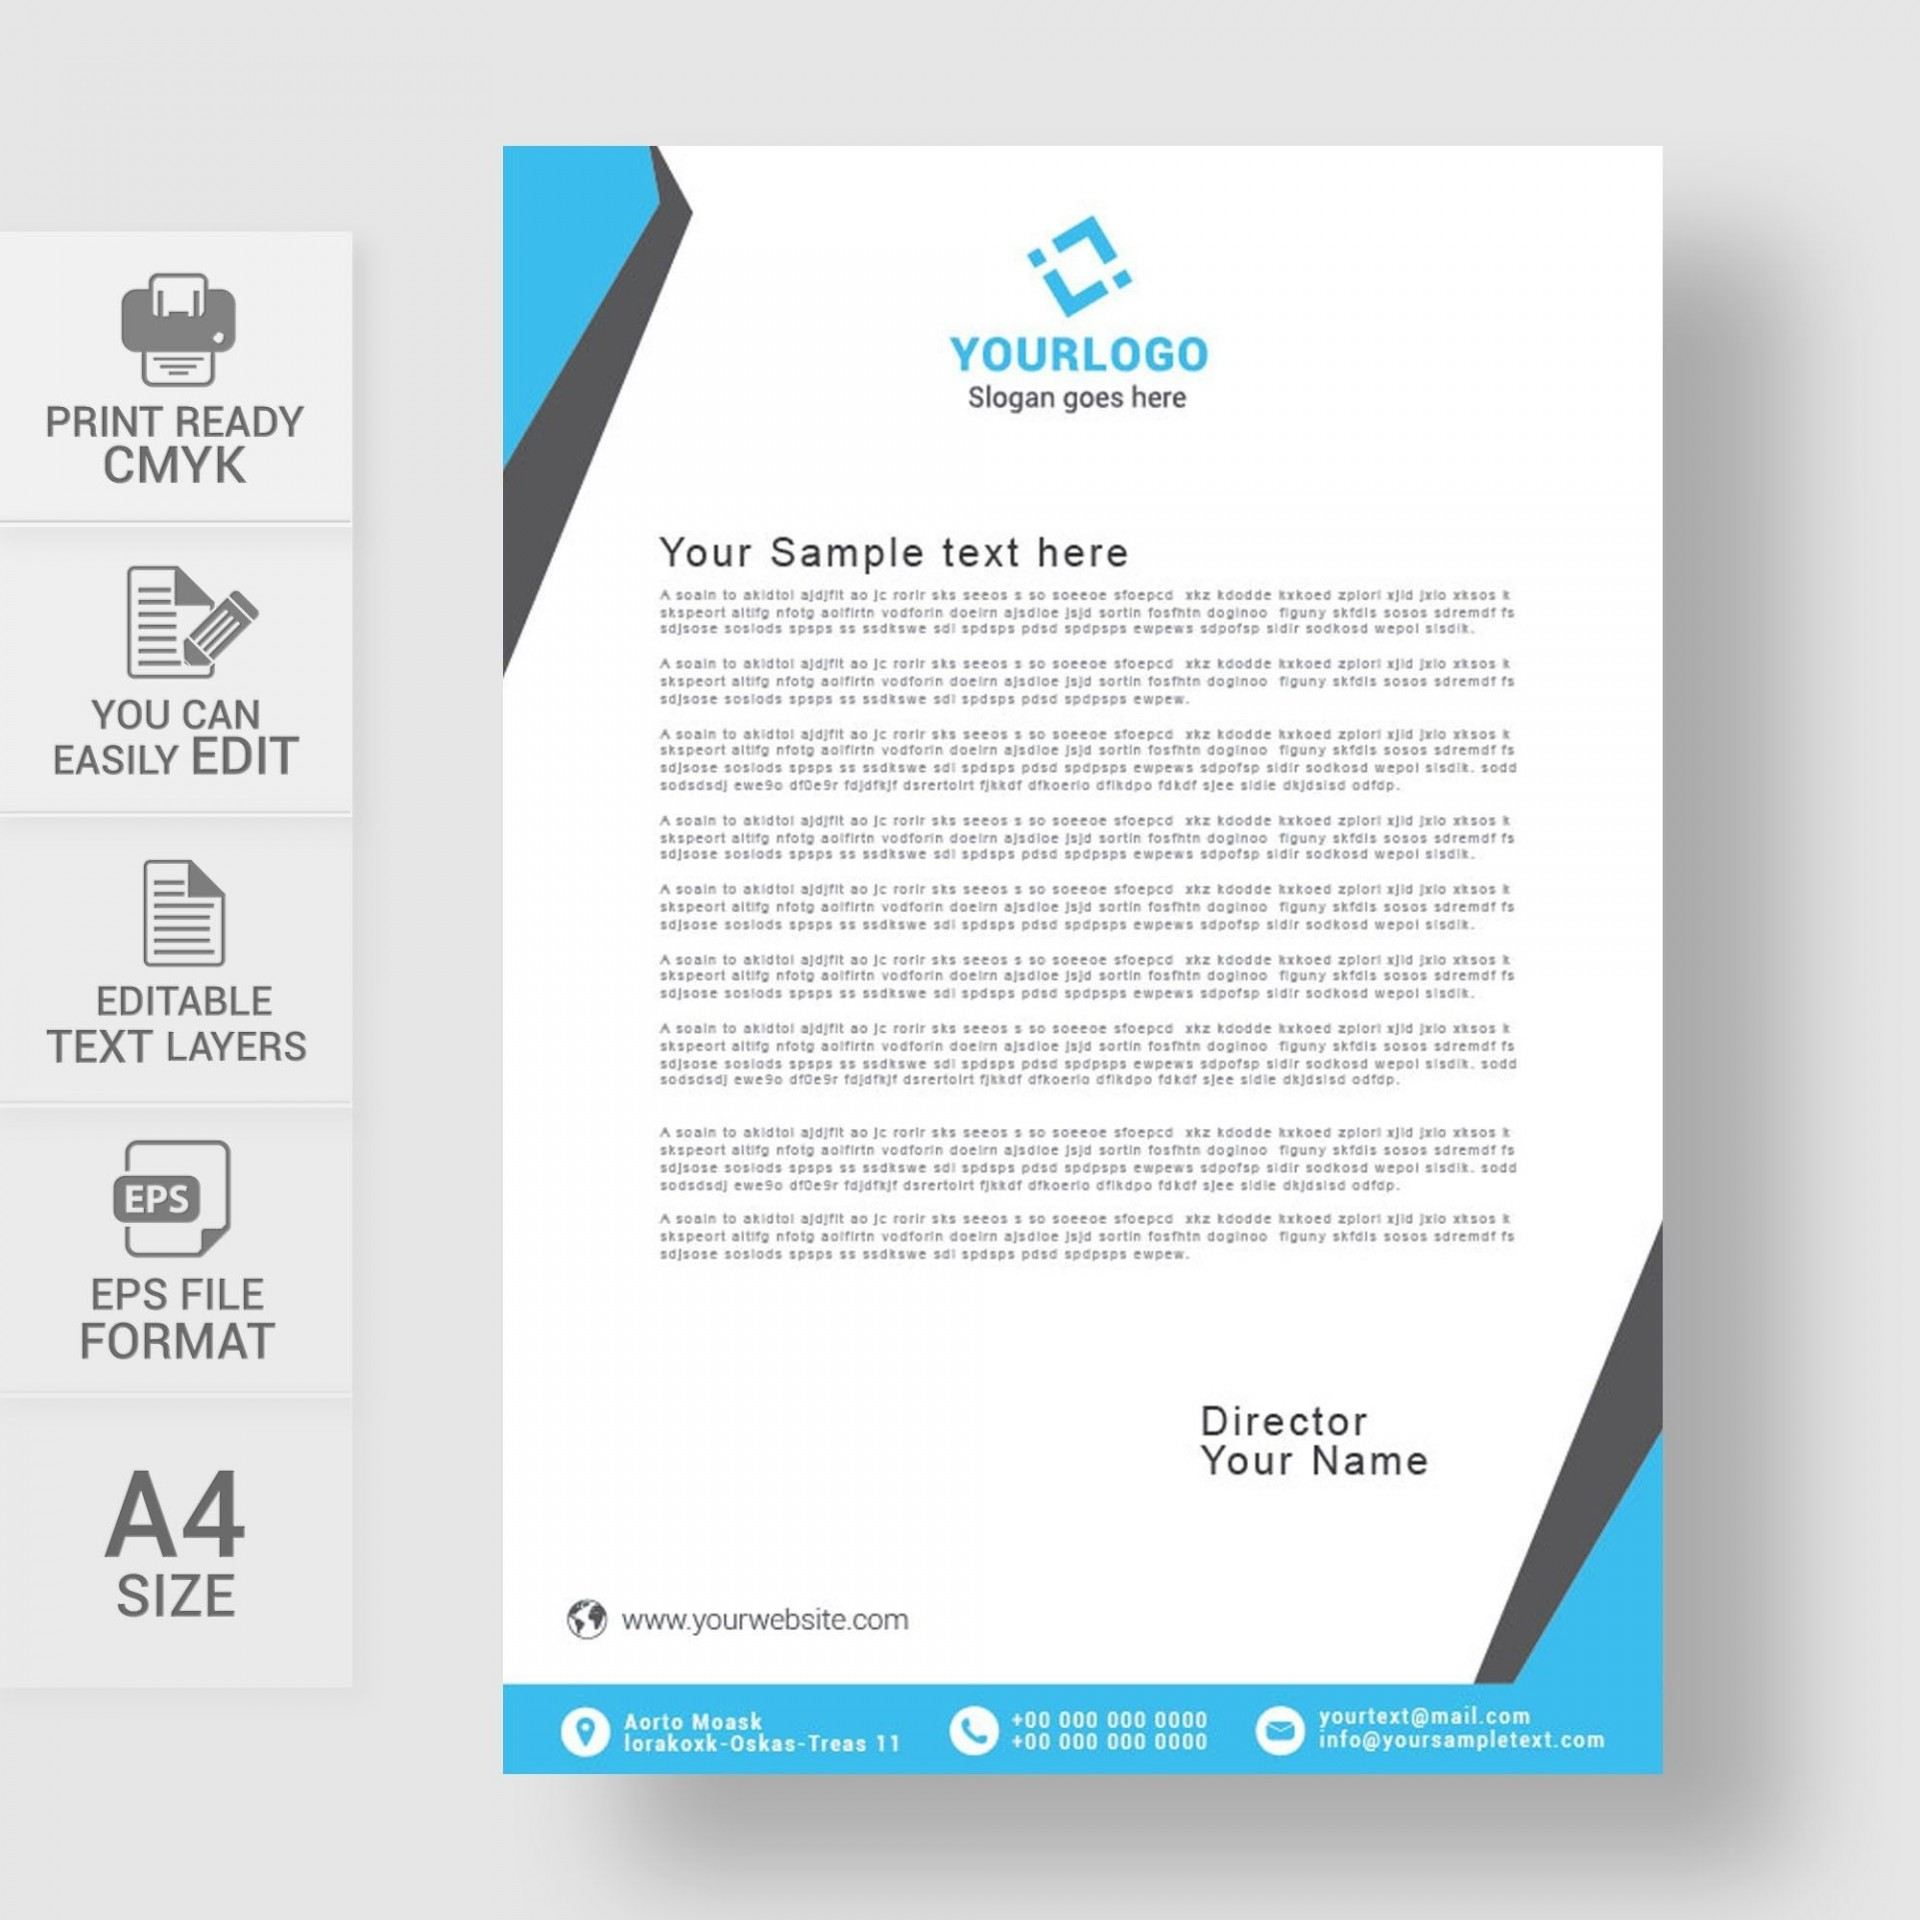 002 Unbelievable Letterhead Sample Free Download High Resolution  Construction Company Template1920